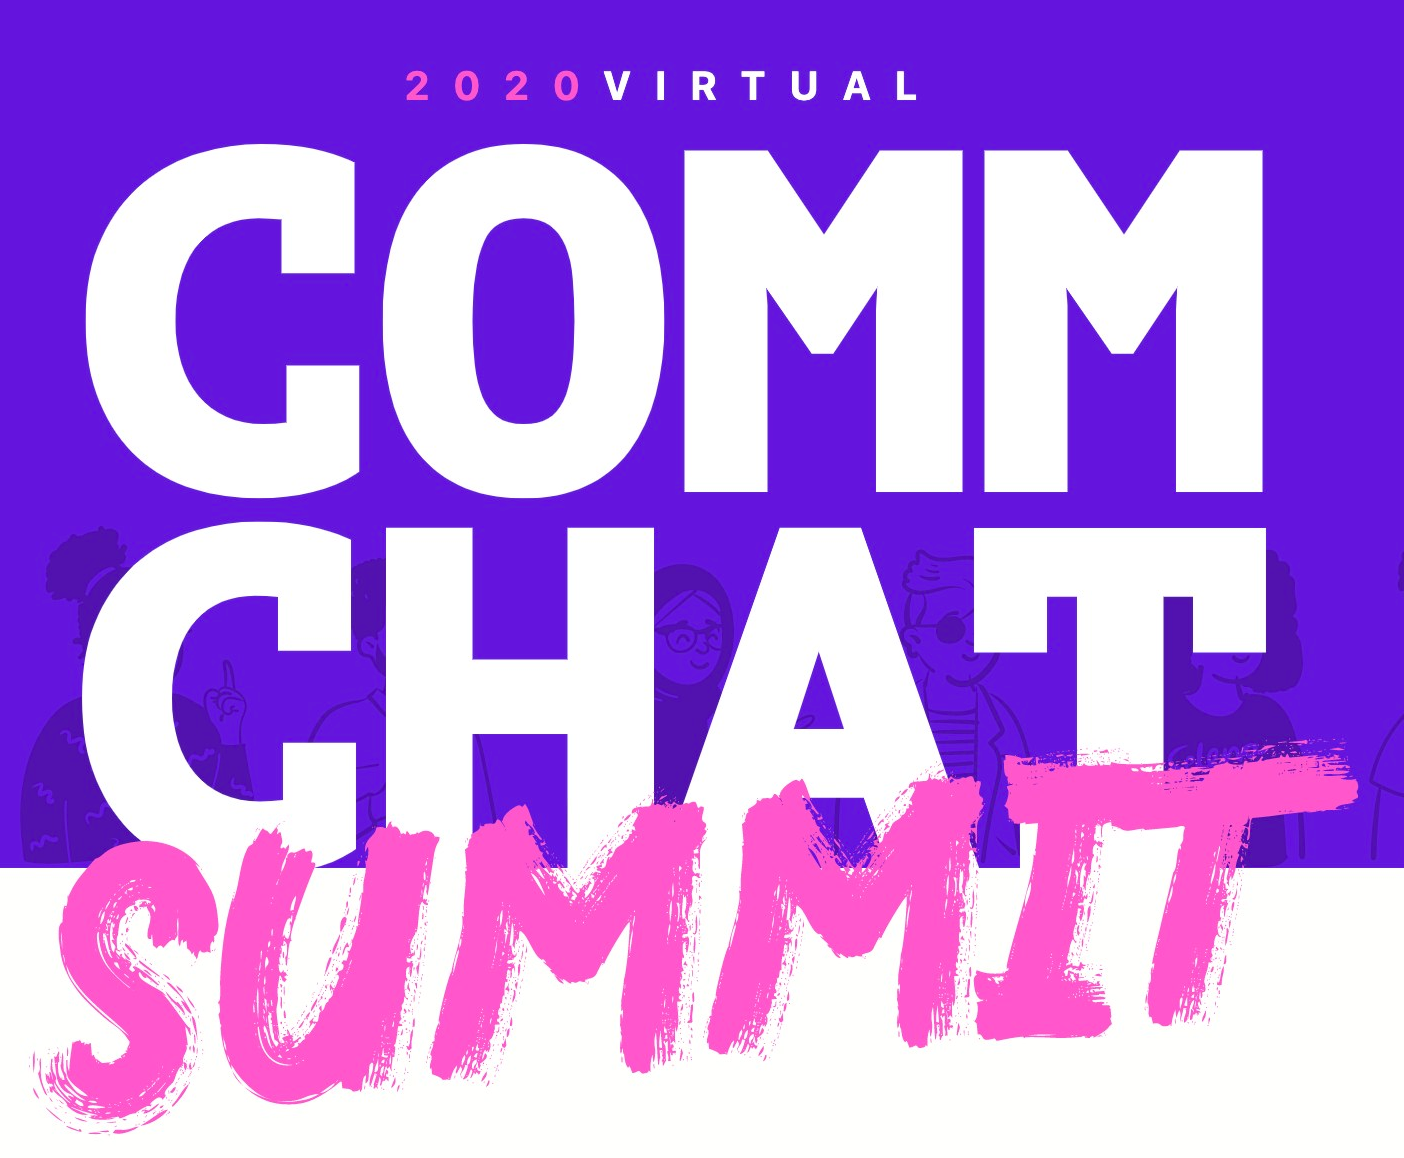 Virtual Community Summit 2020 · Community Chat